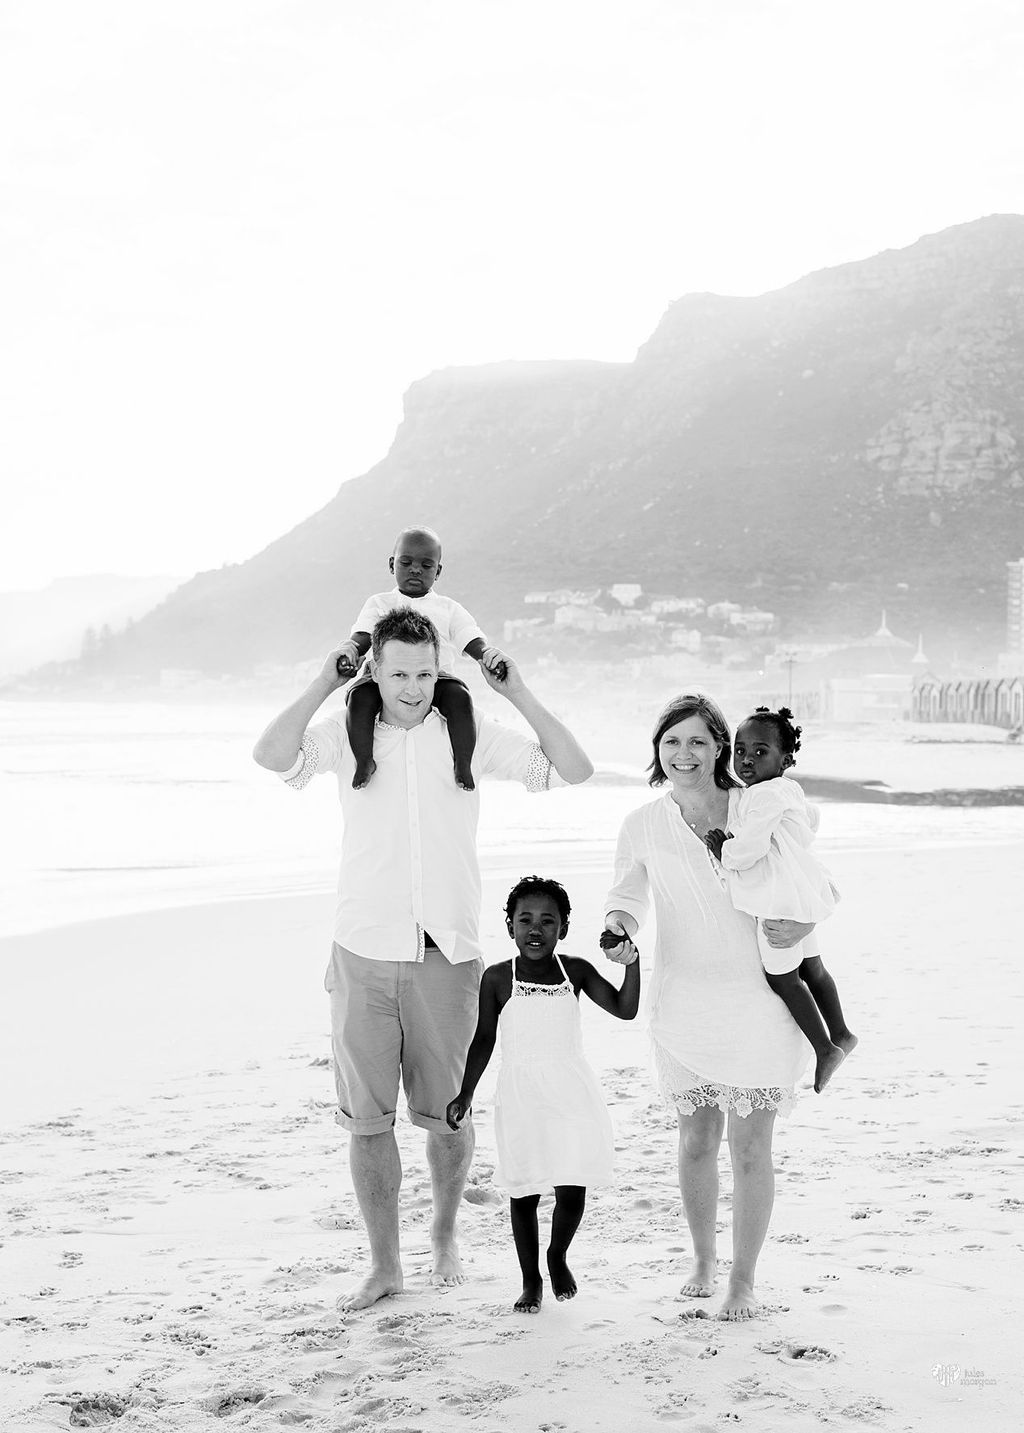 Anita, Terje and family // Muizenberg beach